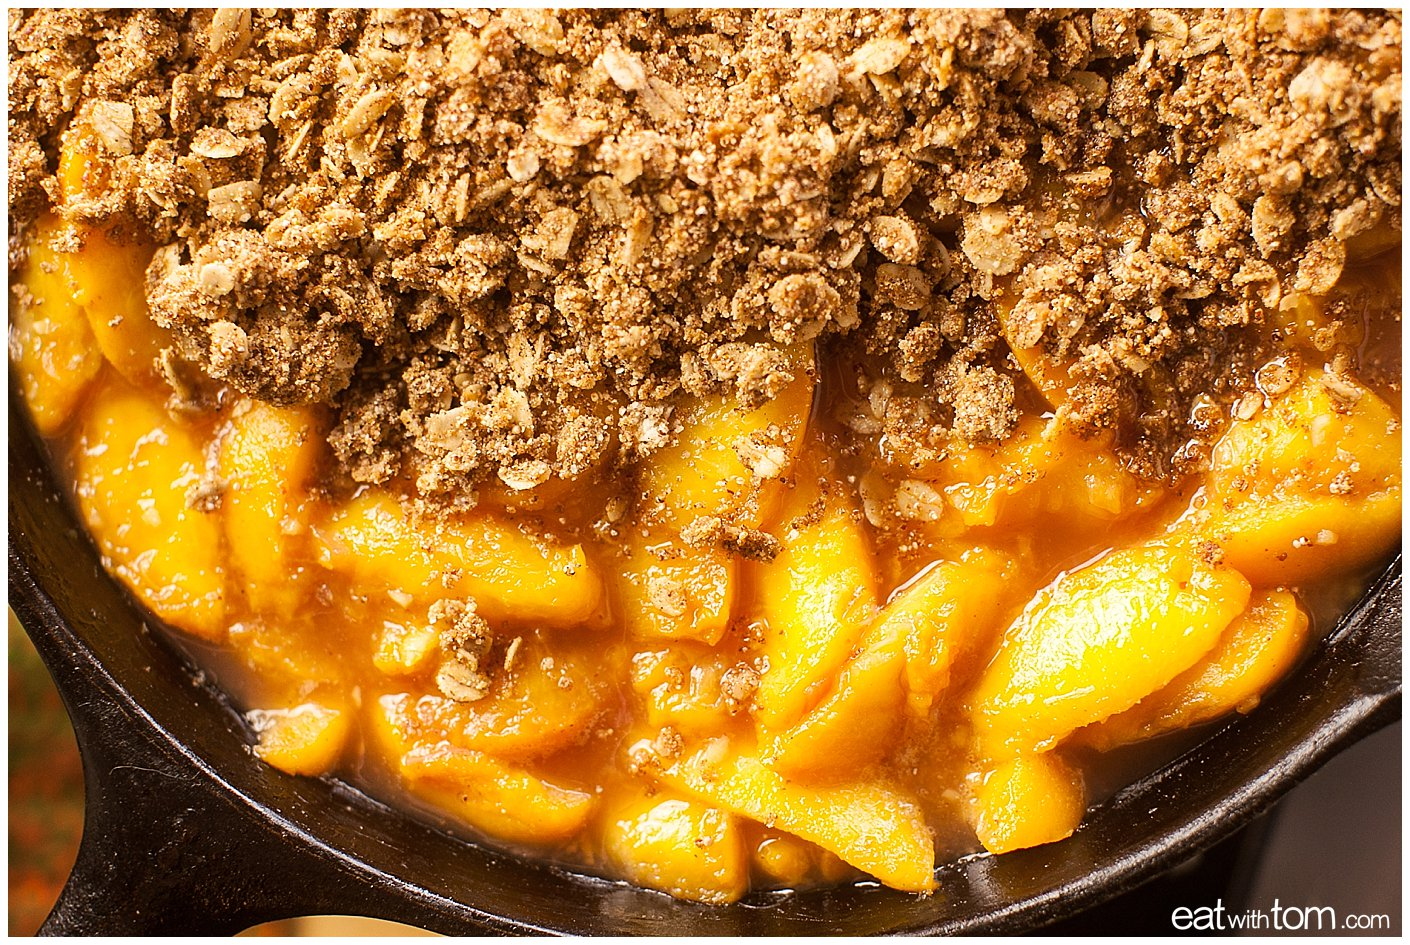 Peach quinoa crumble dessert recipe - Healthy Dessert Recipes Quinoa Peach Crumble